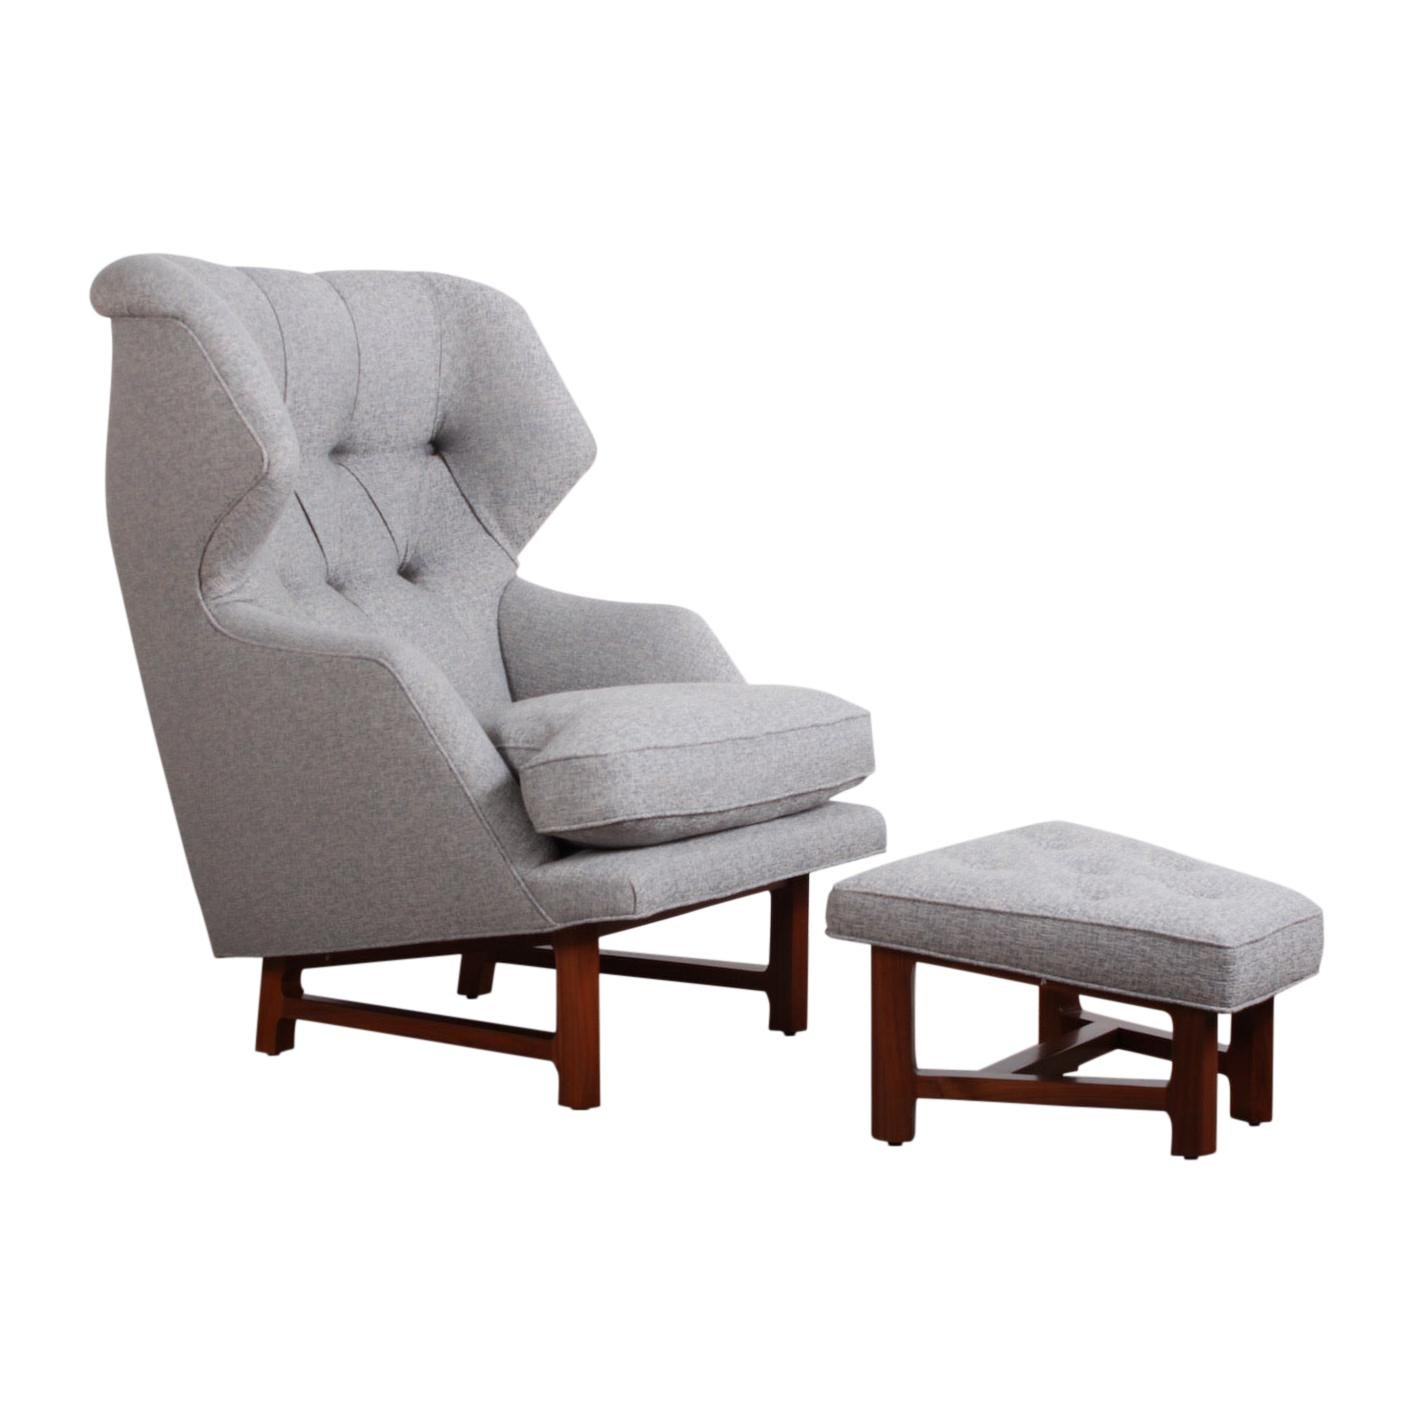 """Edward Wormley for Dunbar """"Janus"""" Wing Chair and Ottoman"""